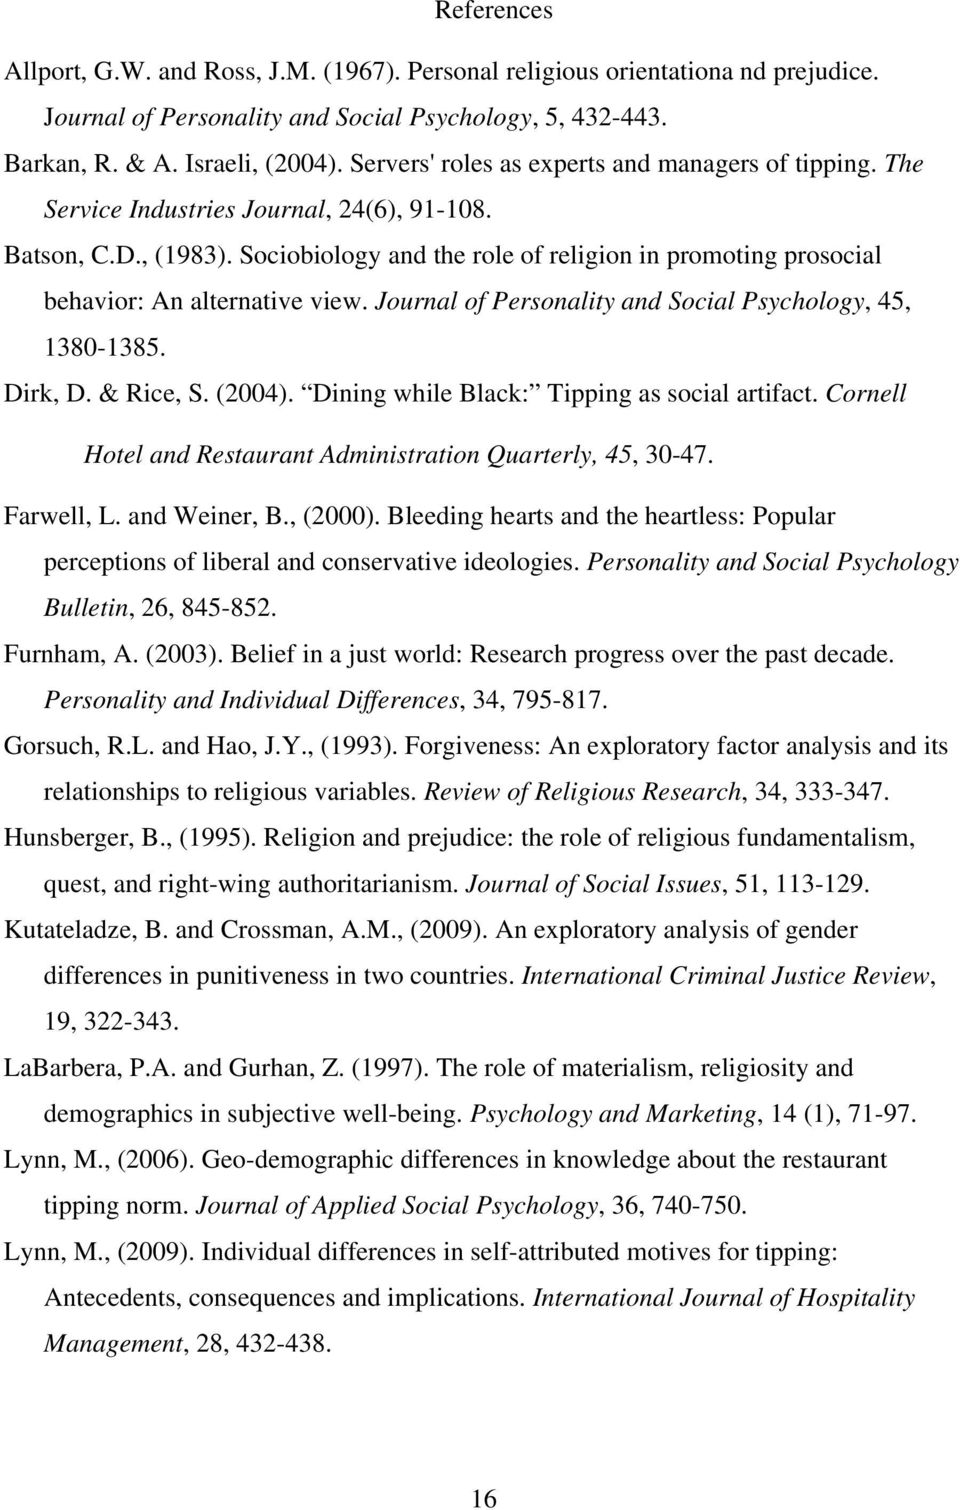 Sociobiology and the role of religion in promoting prosocial behavior: An alternative view. Journal of Personality and Social Psychology, 45, 1380-1385. Dirk, D. & Rice, S. (2004).